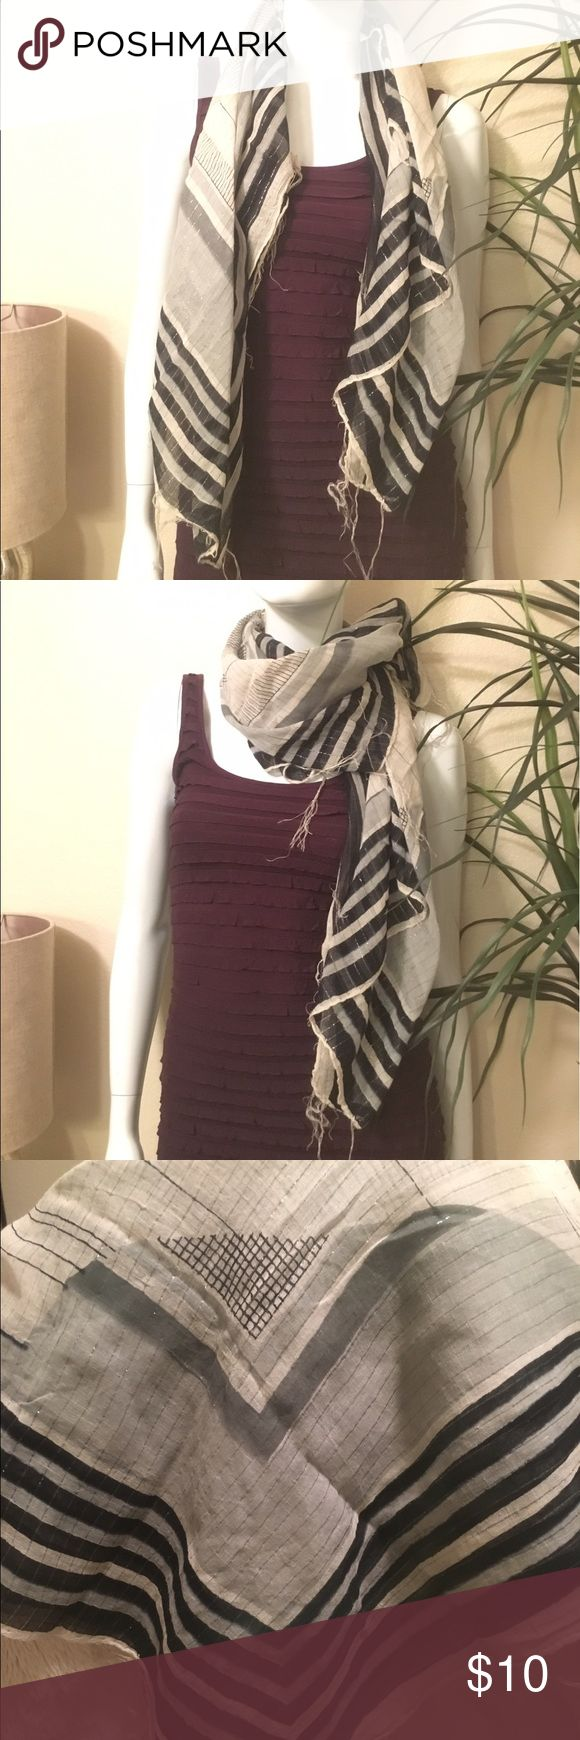 Geometric Scarf Black, white, grey and silver scarf with different patterns Accessories Scarves & Wraps